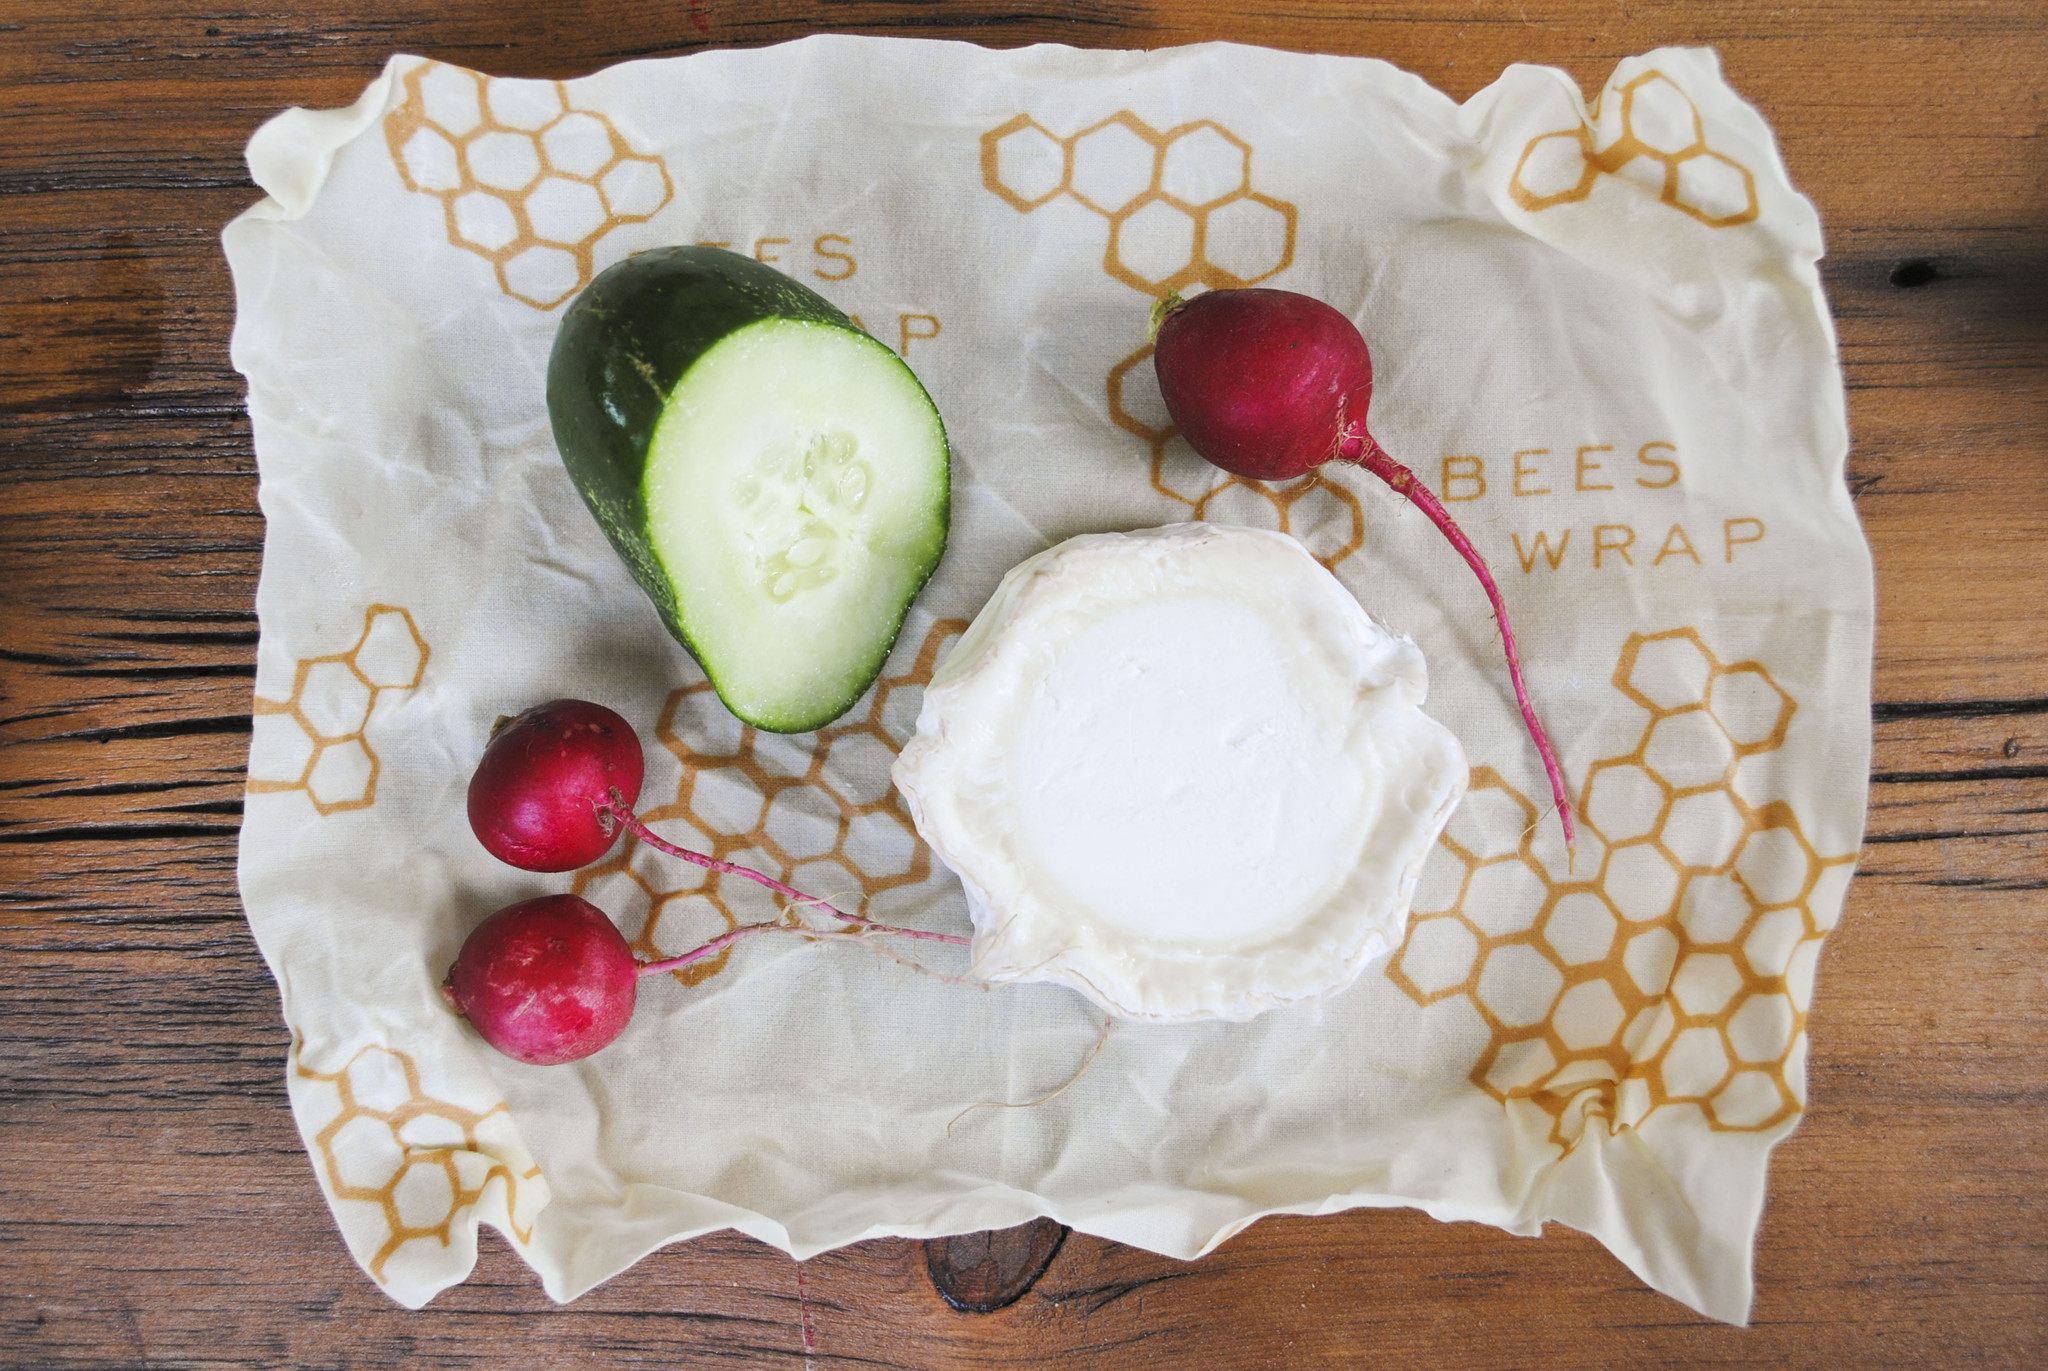 Bee's Wrap, a plastic wrap alternative derived from bee's wax.